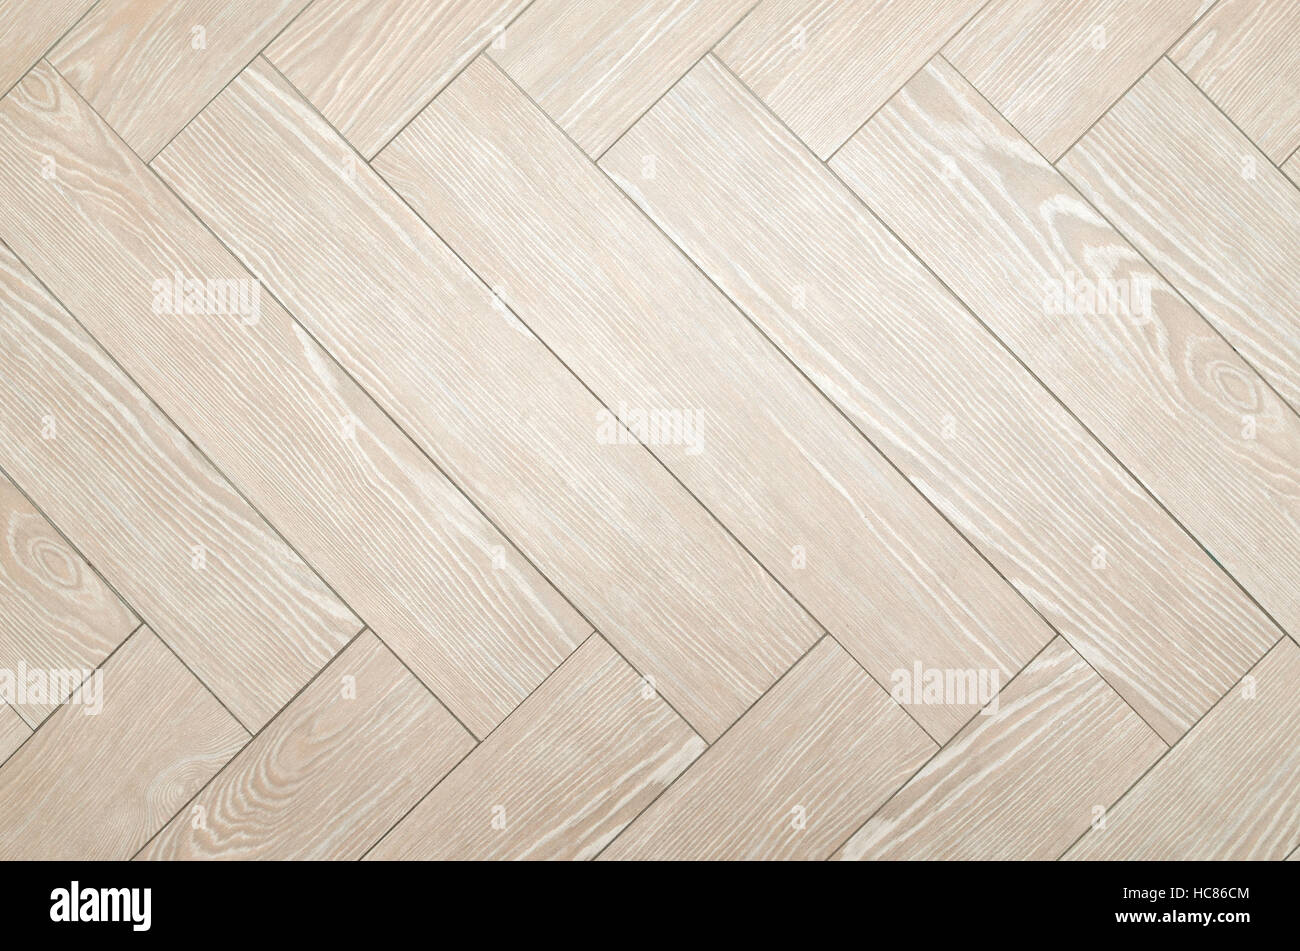 Beige floor tiles with look of parquet as a background - Stock Image